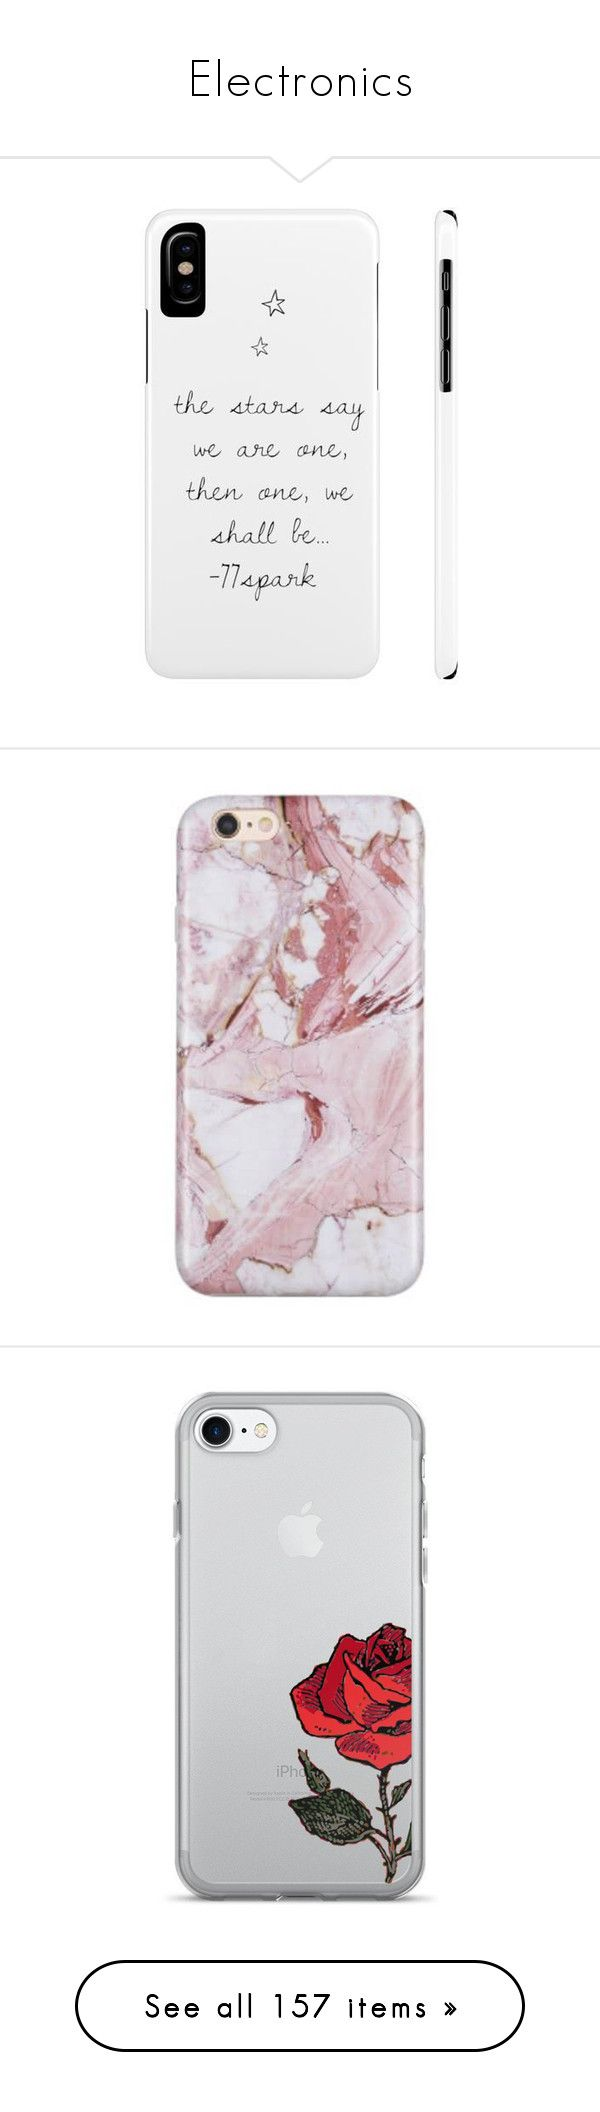 """""""Electronics"""" by grace-food-lover1 ❤ liked on Polyvore featuring accessories, tech accessories, phone cases, tech, phones, electronics, fillers, marble iphone case, iphone cover case and iphone sleeve case"""